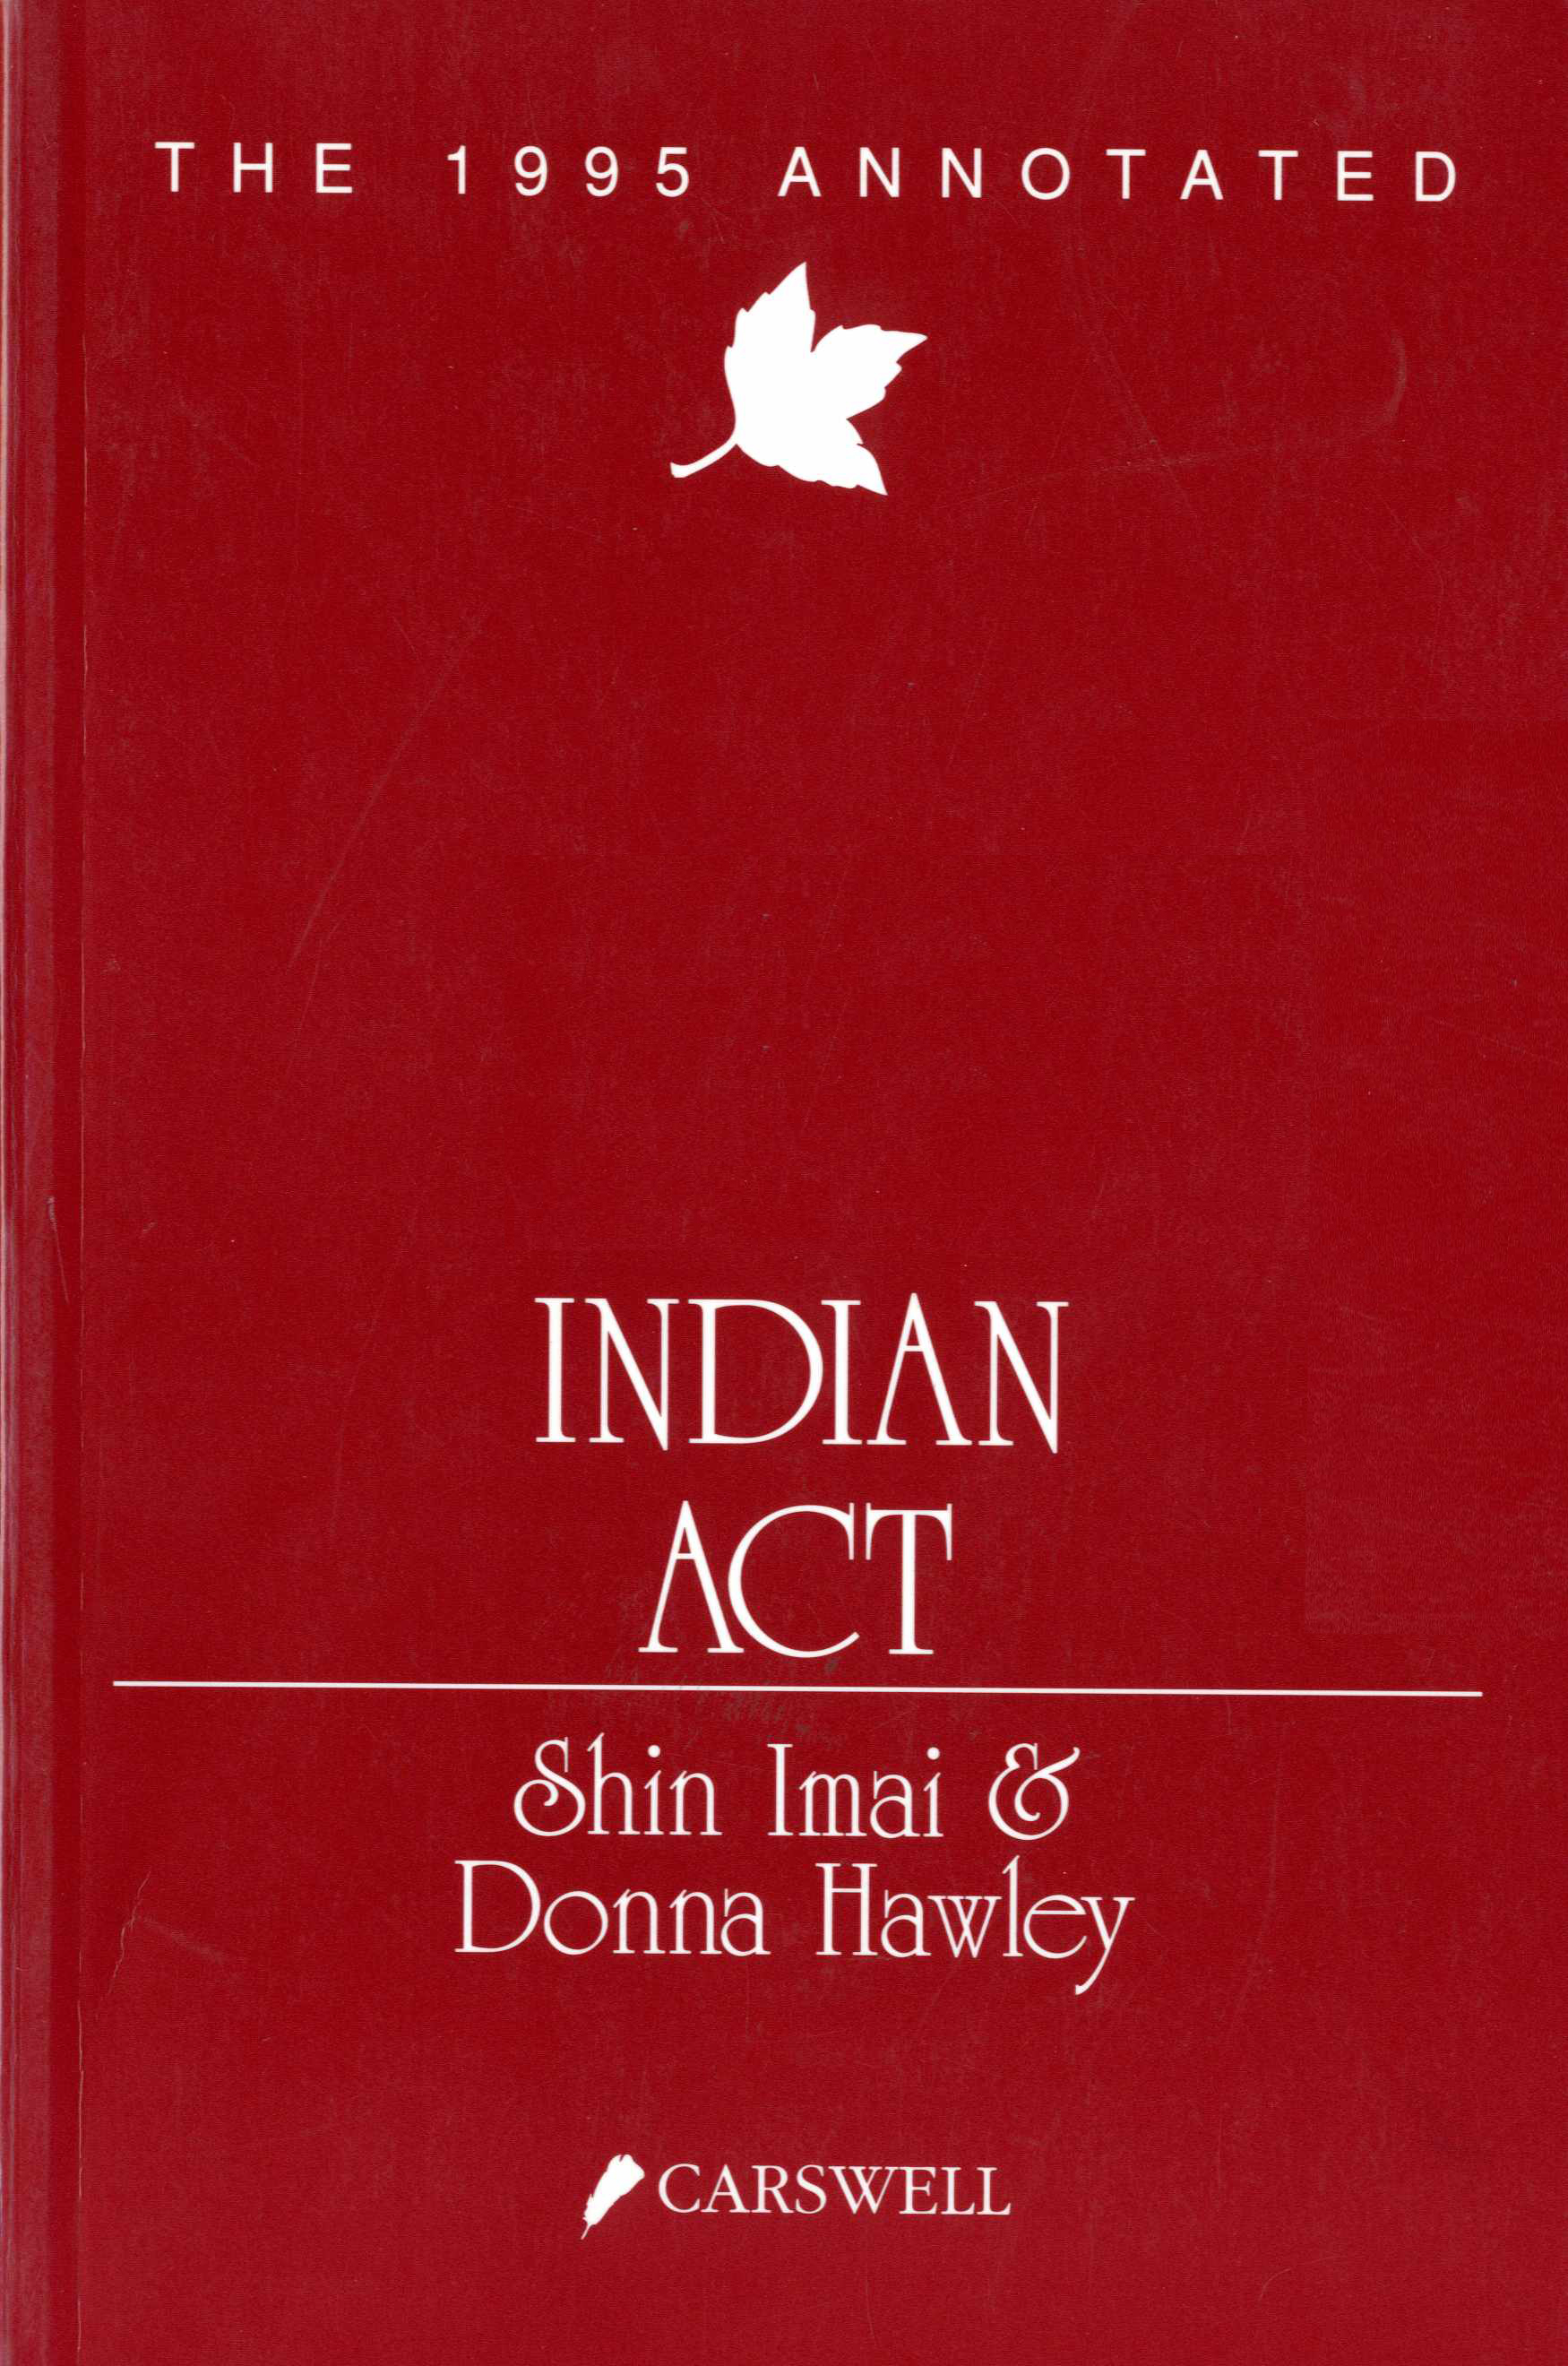 The 1995 Annotated Indian Act Image